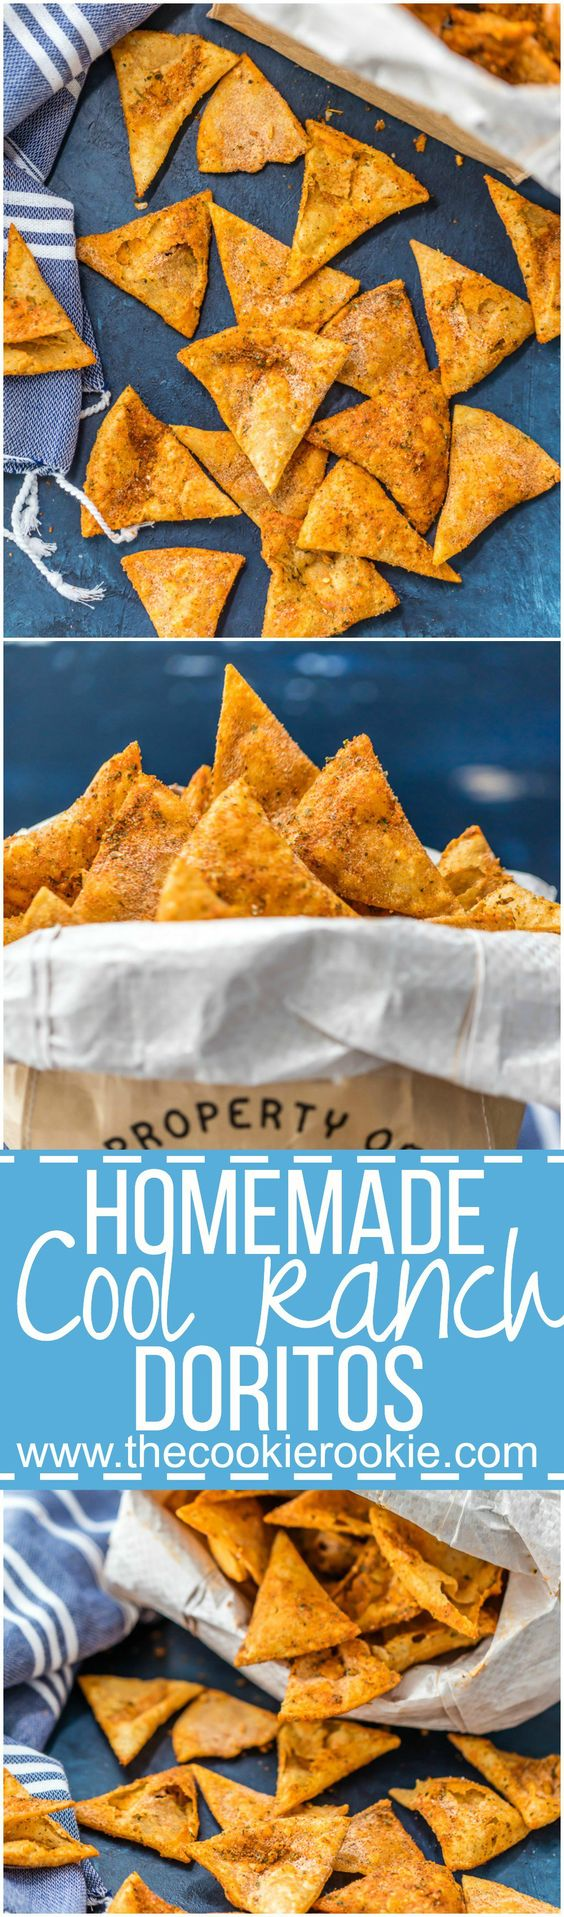 You can make DORITOS at home! COPYCAT HOMEMADE COOL RANCH DORITOS are so fun, tasty, and CHEAP! Make them at home and impress your family. So easy and delicious!